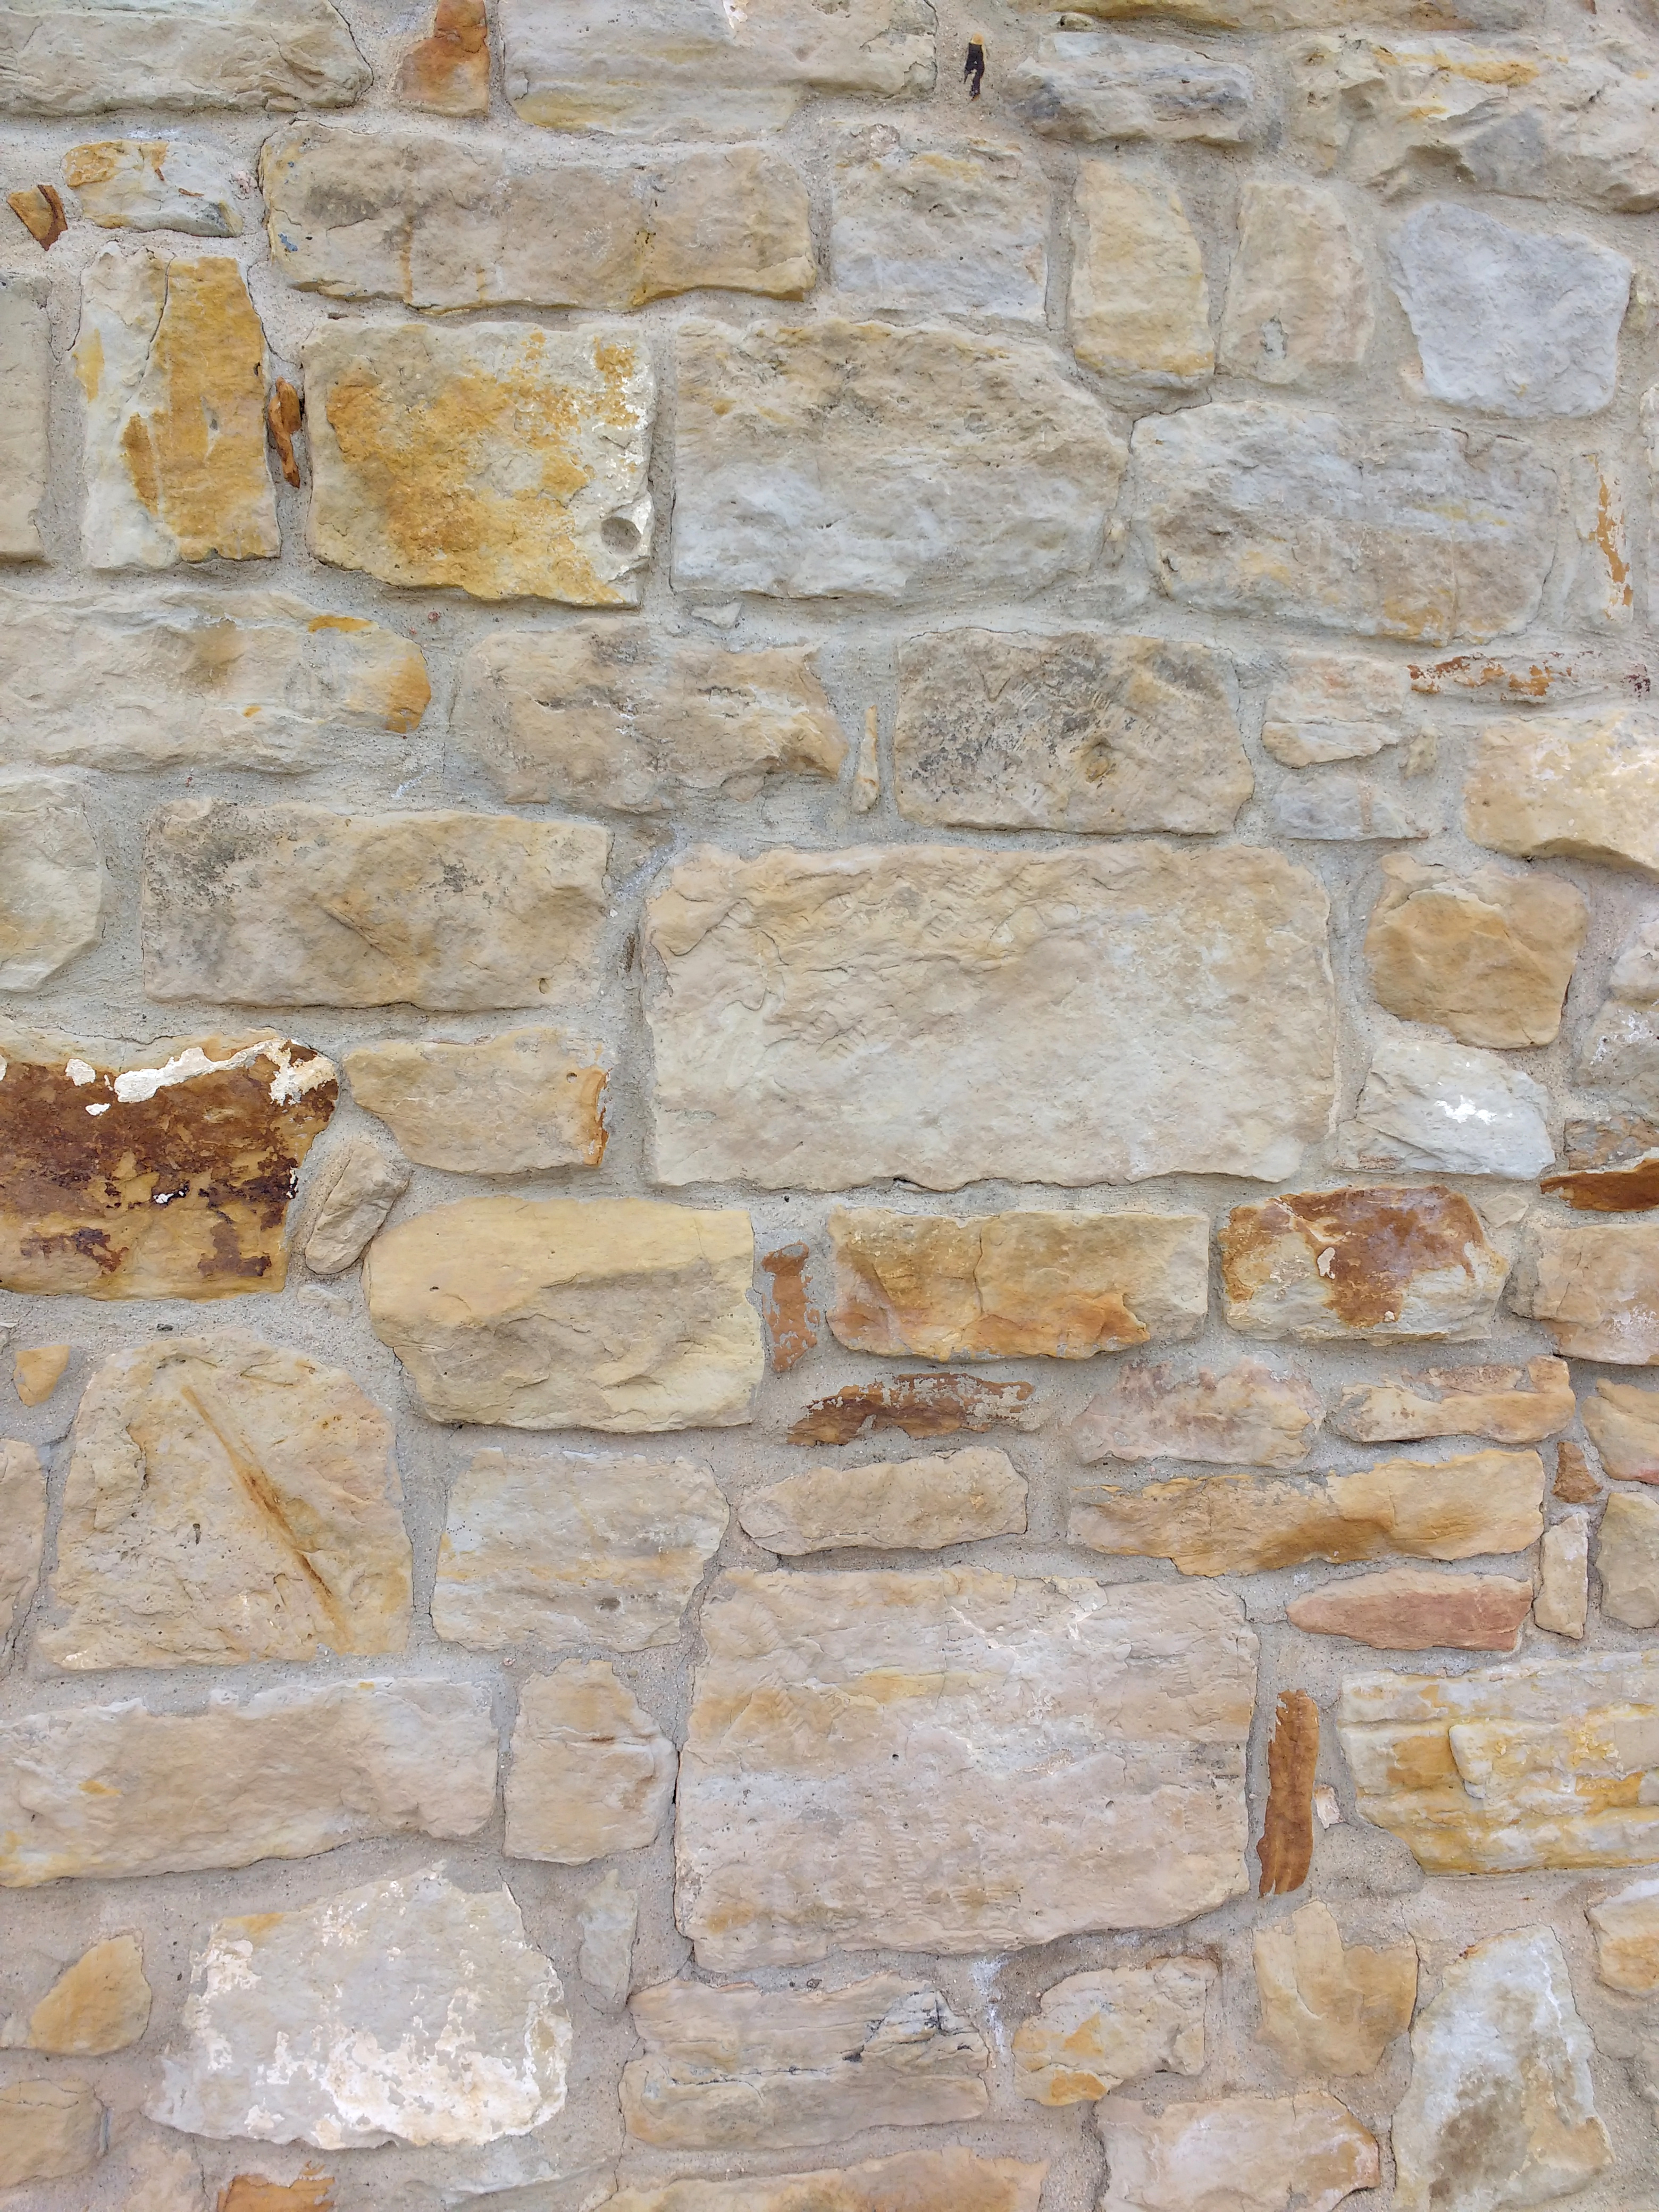 Stone Wall Texture Picture   Free Photograph   Photos ...